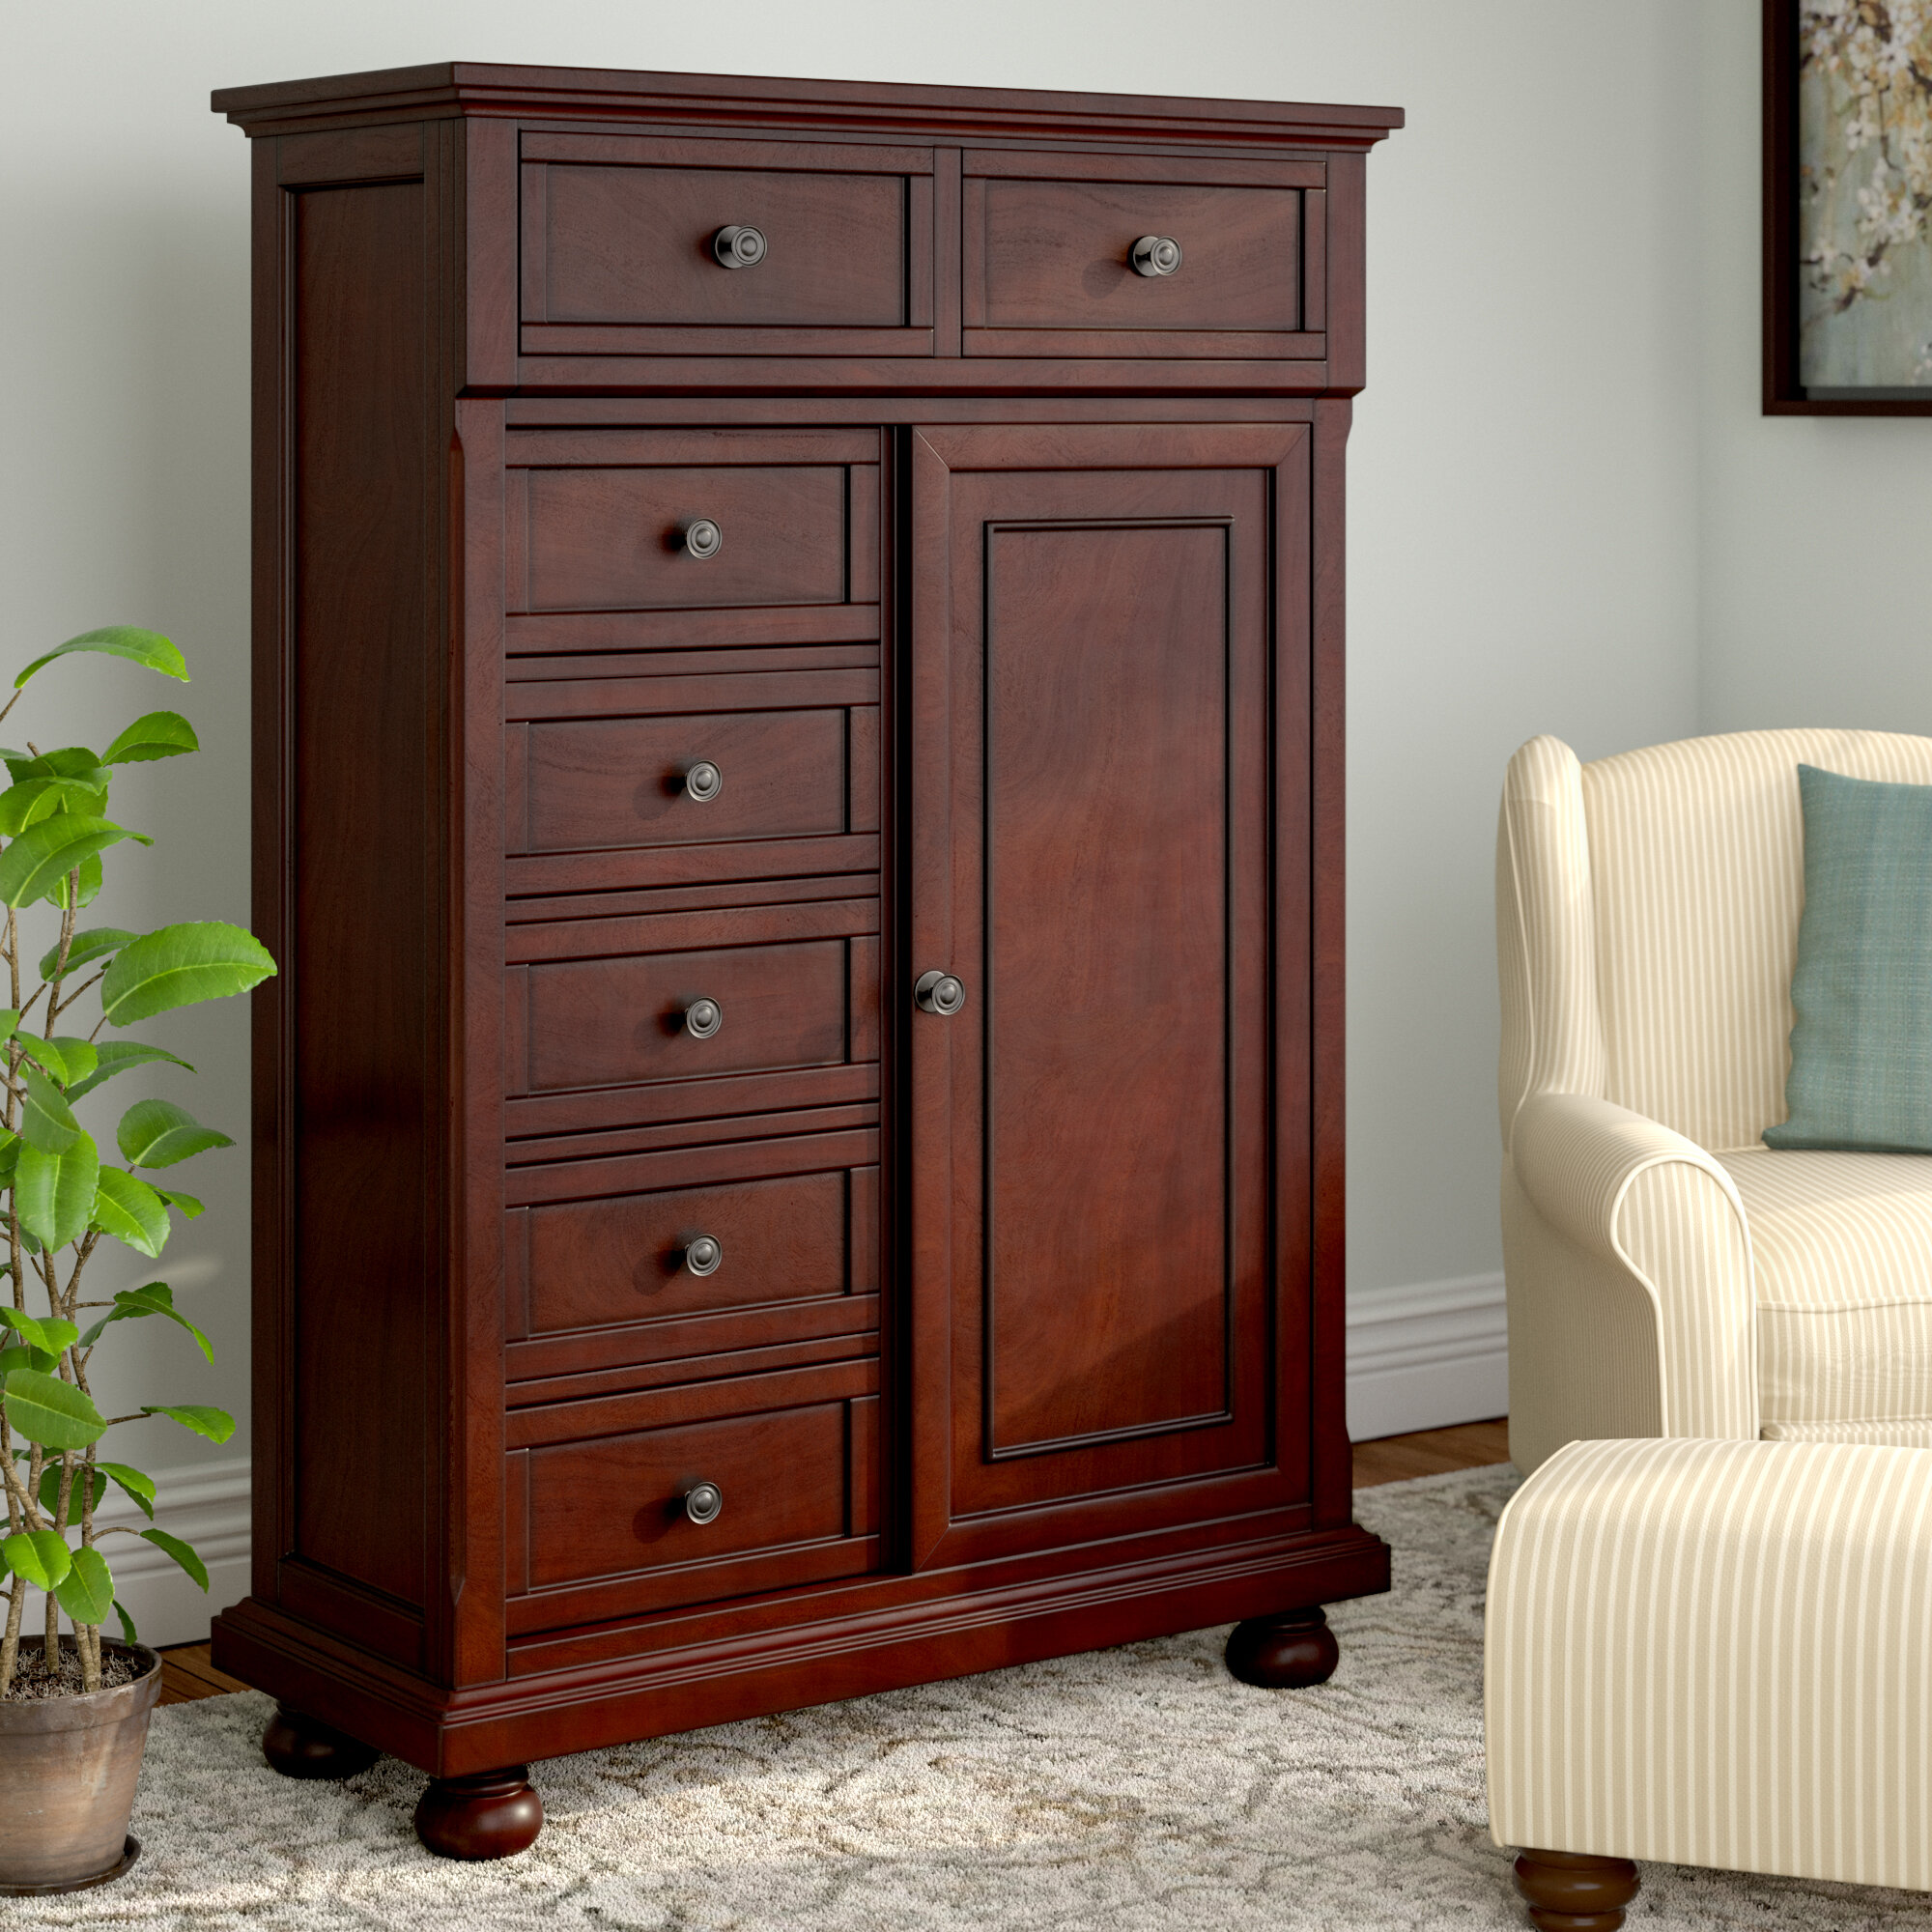 high home for the closet dresser lifestyle pbteen narrow creative chelsea washington options story and small spaces handsome post tower dressers